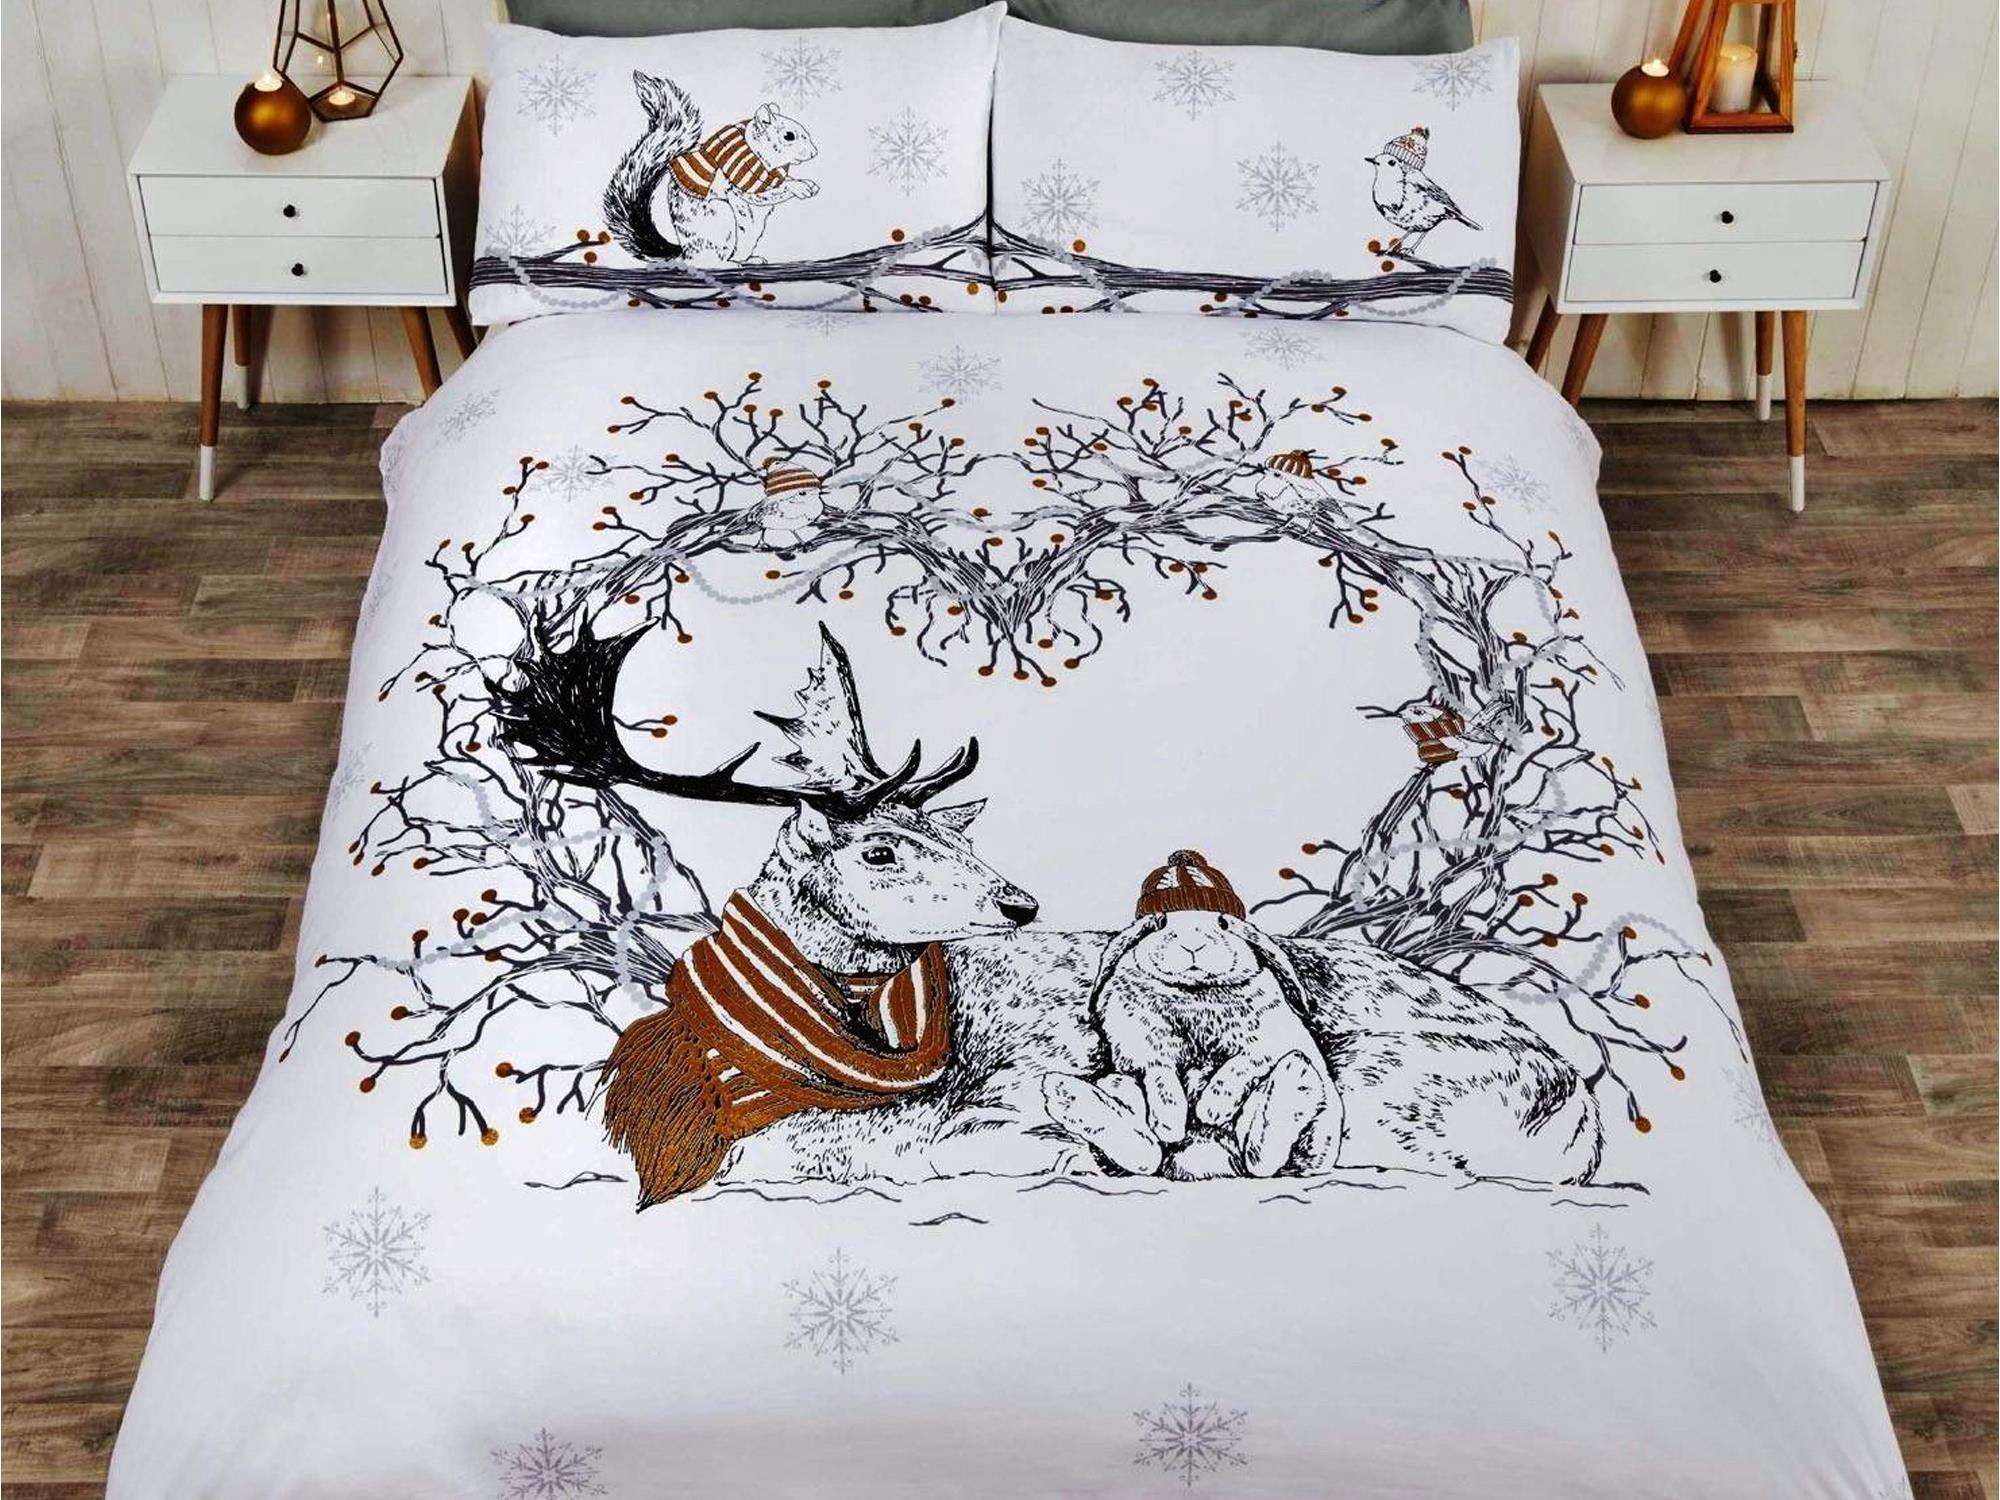 Christmas Bedding.Stag Friends Christmas Bedding Set Gold